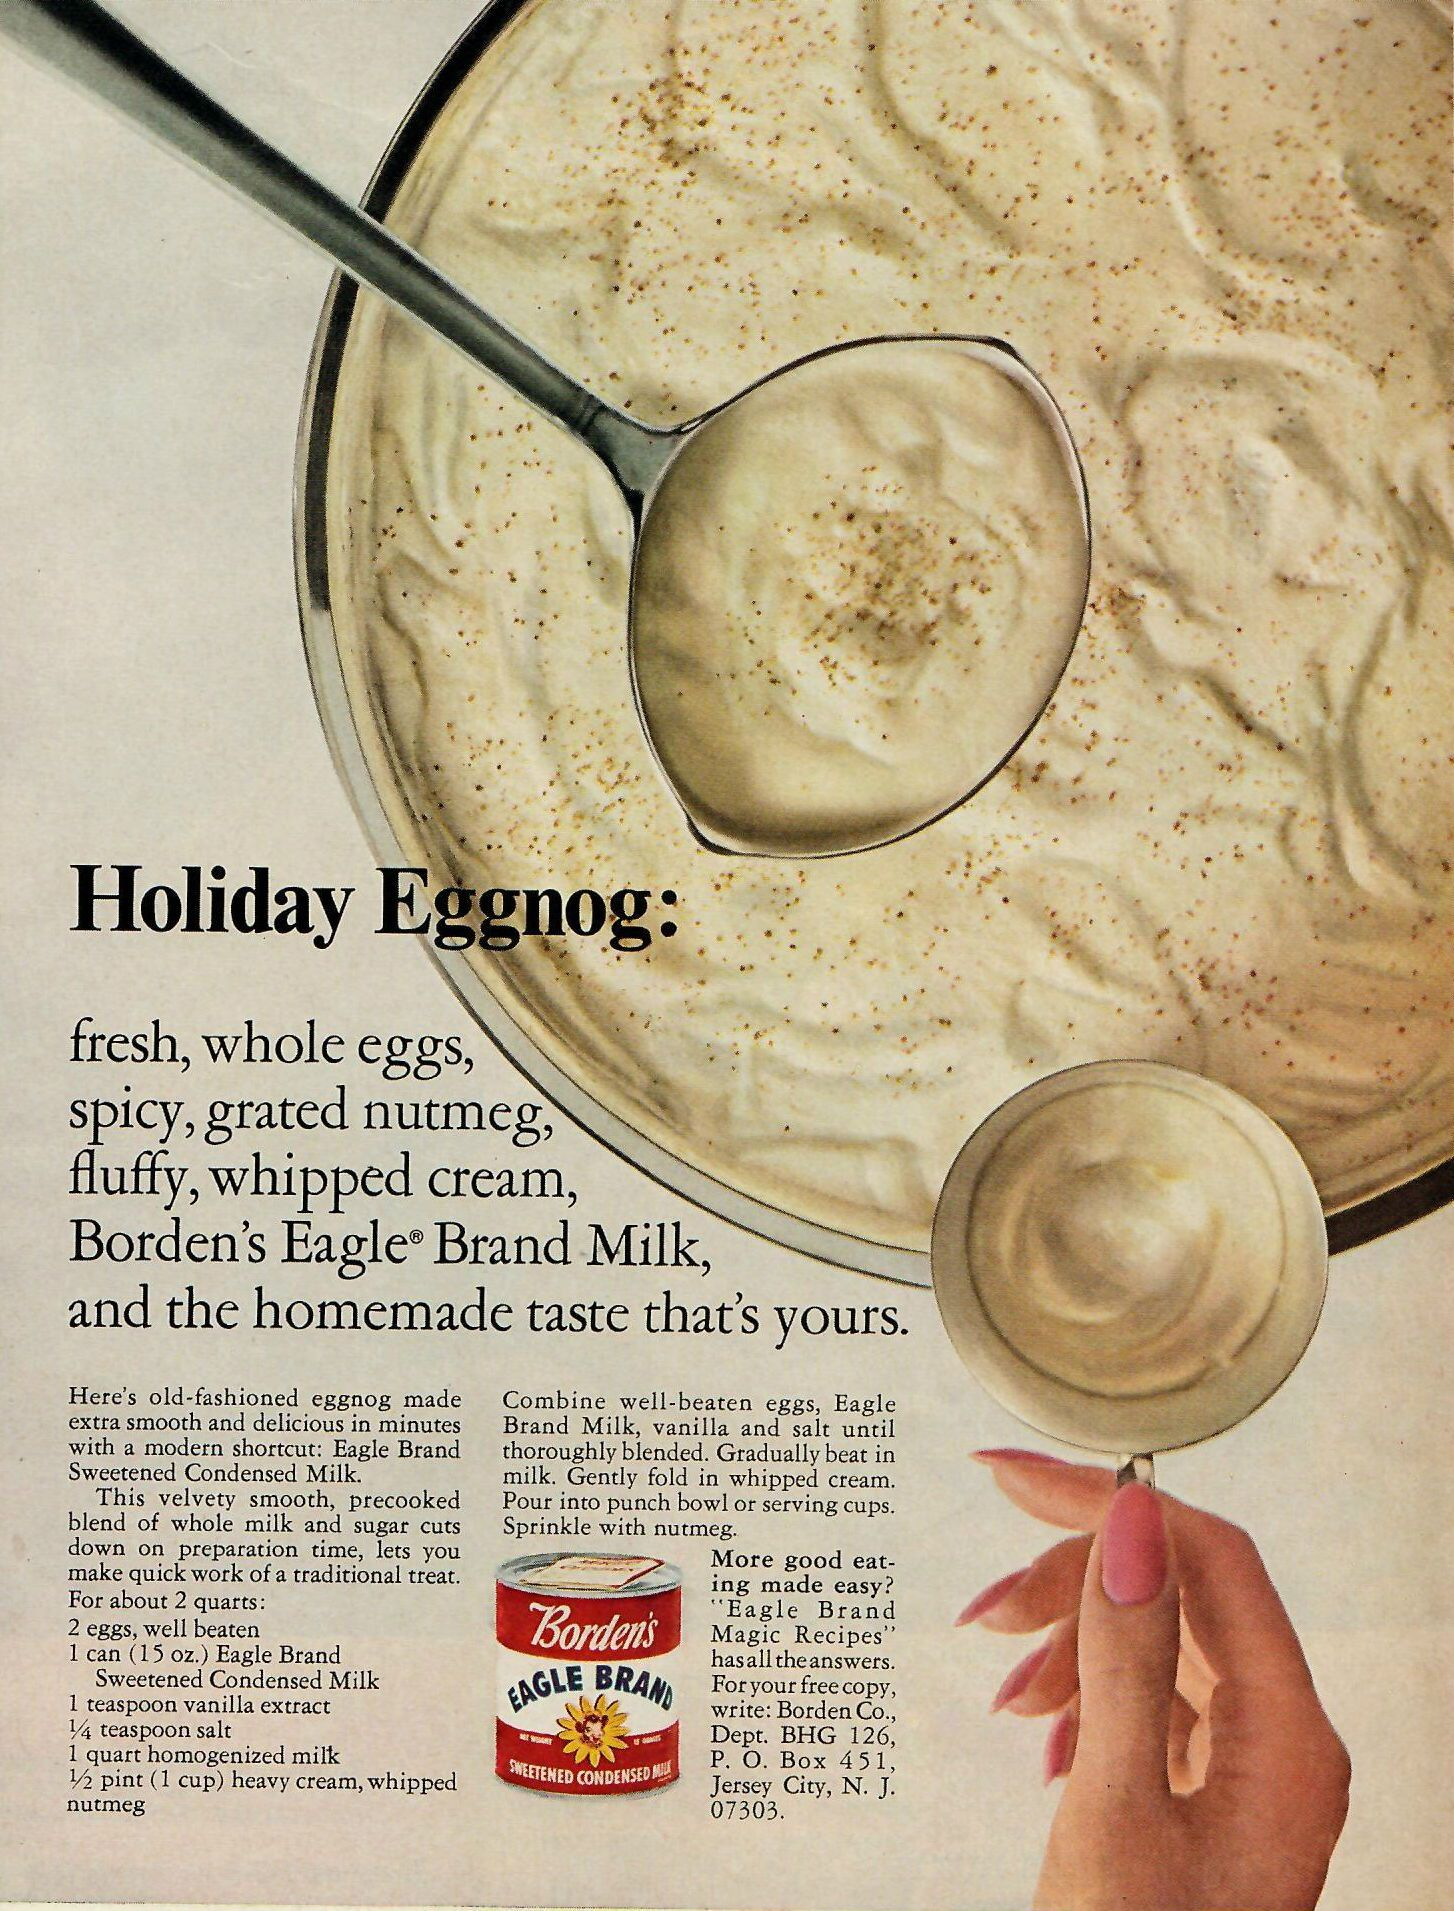 Holiday Eggnog From Borden S Sweetened Condensed Milk An Old Fashioned Eggnog Made Extra Smooth And Delicious In M Milk Recipes Vintage Recipes Holiday Eggnog